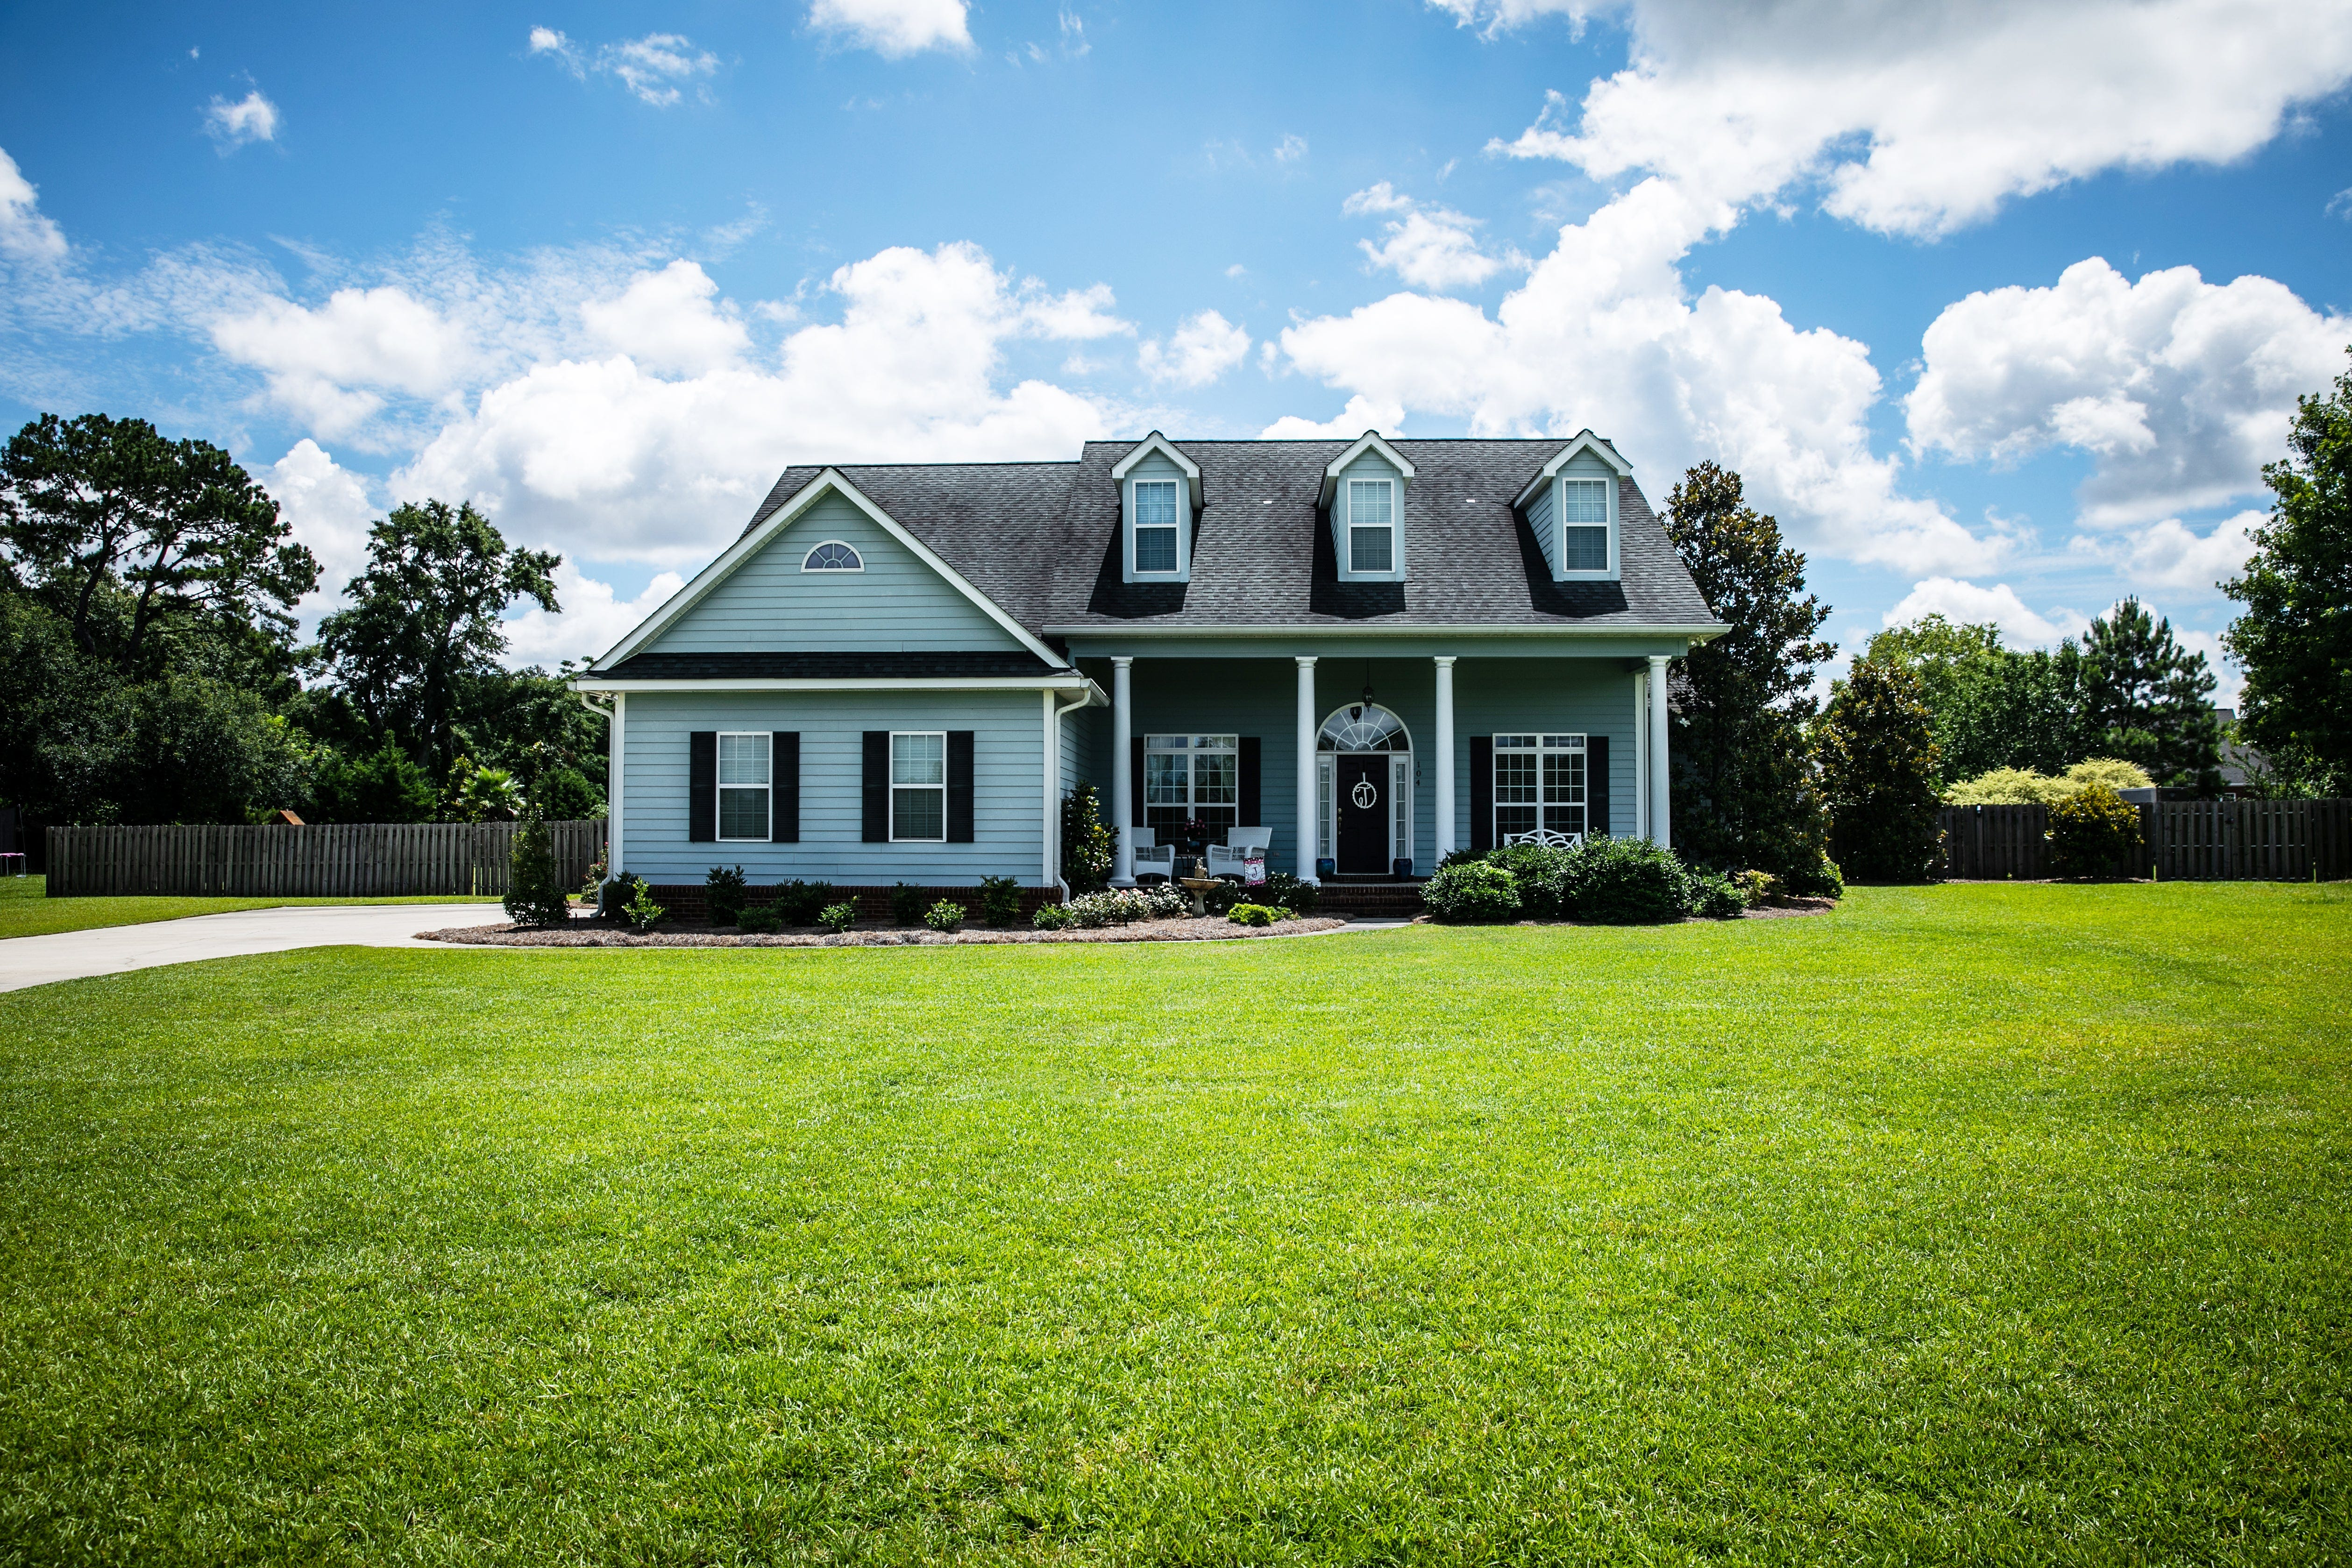 Picture of home on big grassy lawn.